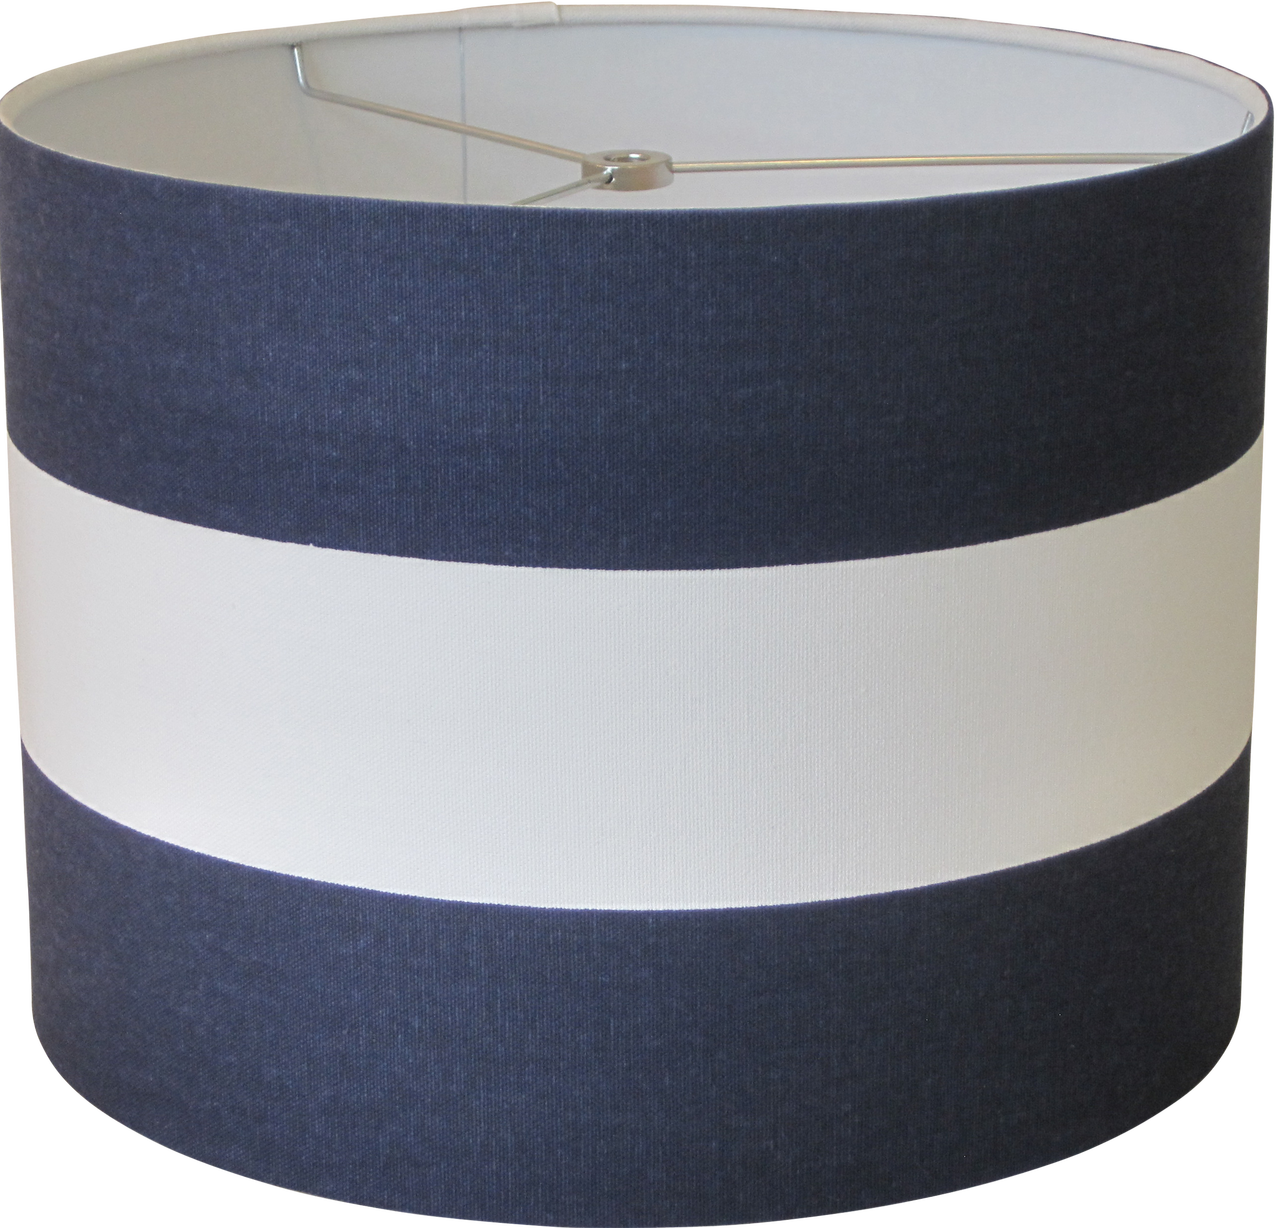 Lampshapes Com Navy Blue And White Striped Lamp Shade Drum 84 99 With Free Shipping Http